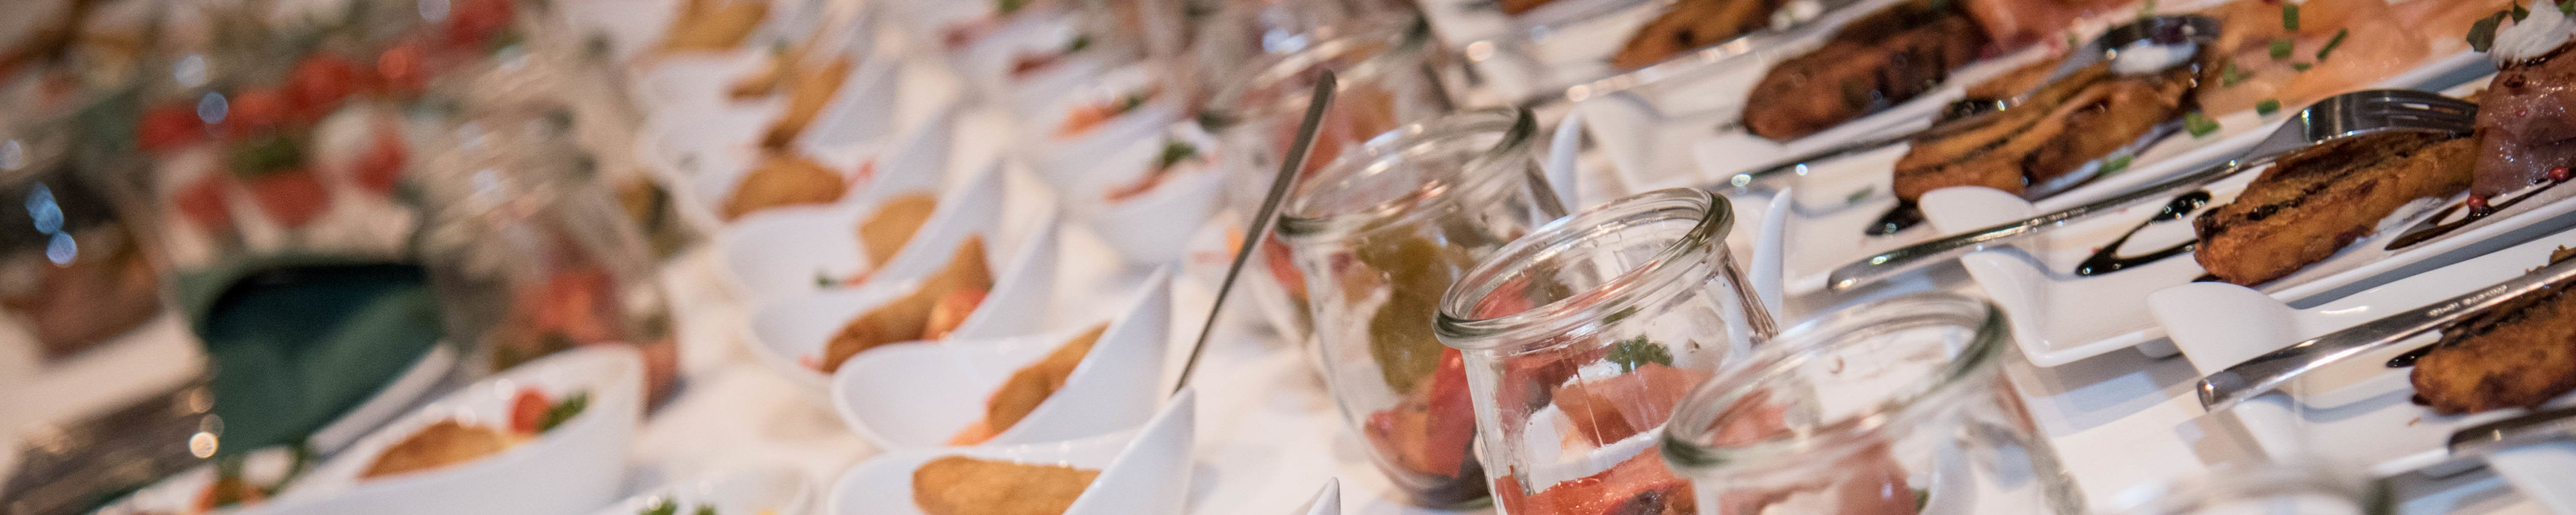 Mayer Catering & Eventgastronomie